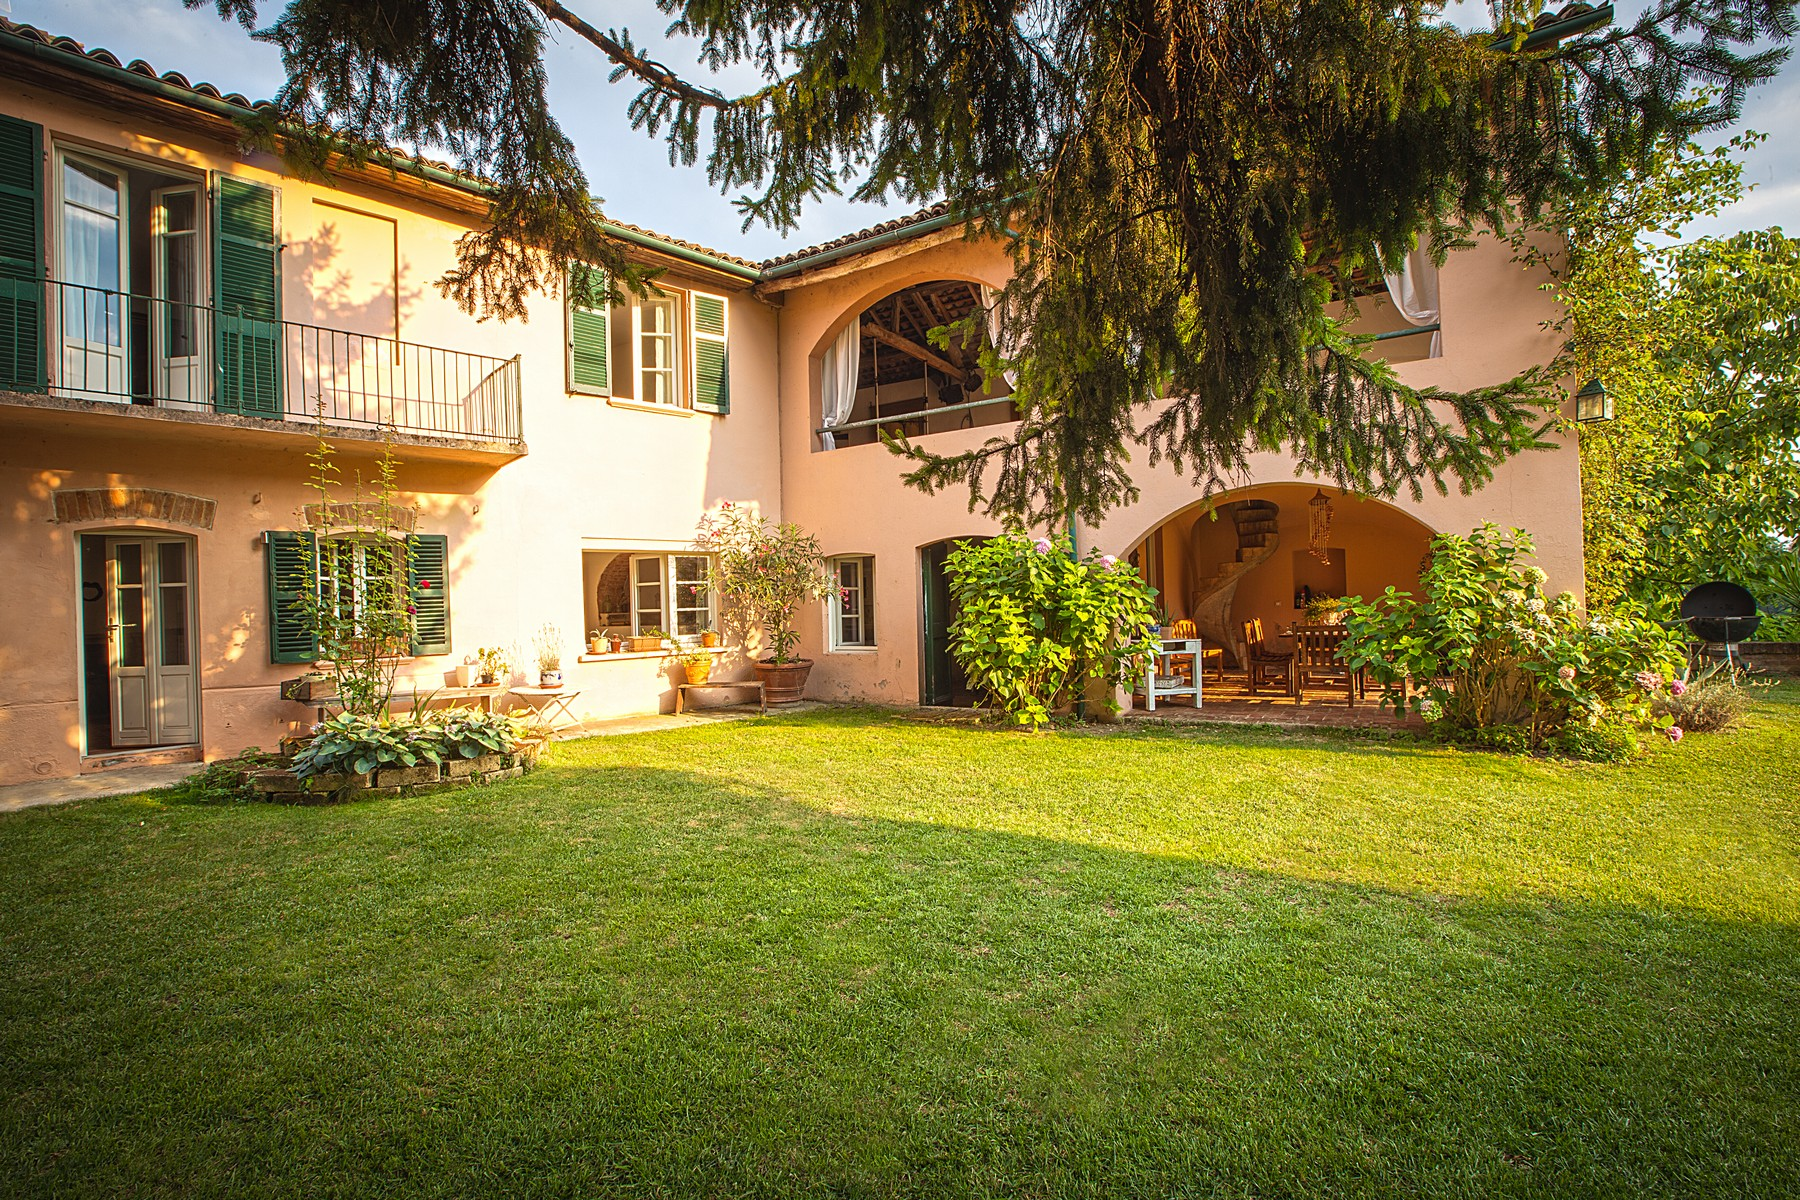 Additional photo for property listing at Charming property in Monferrato with outdoor pool Fubine Fubine, Alessandria 15043 Italie